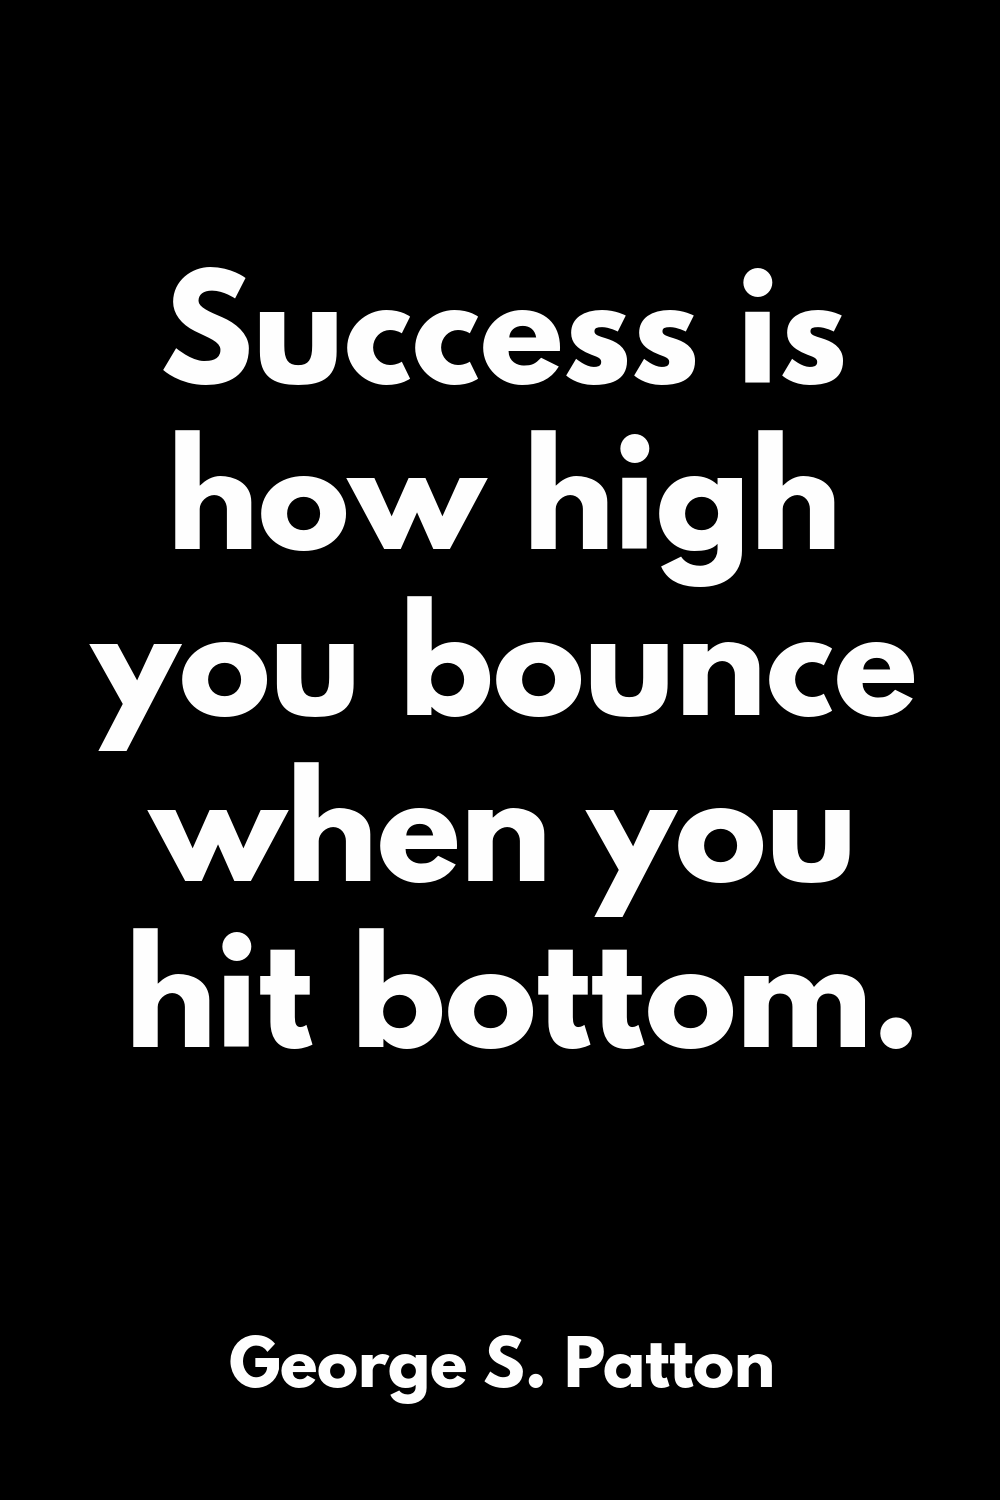 Success Quotes. Best Quotes on Success That Will Inspire and Motivate You to Action